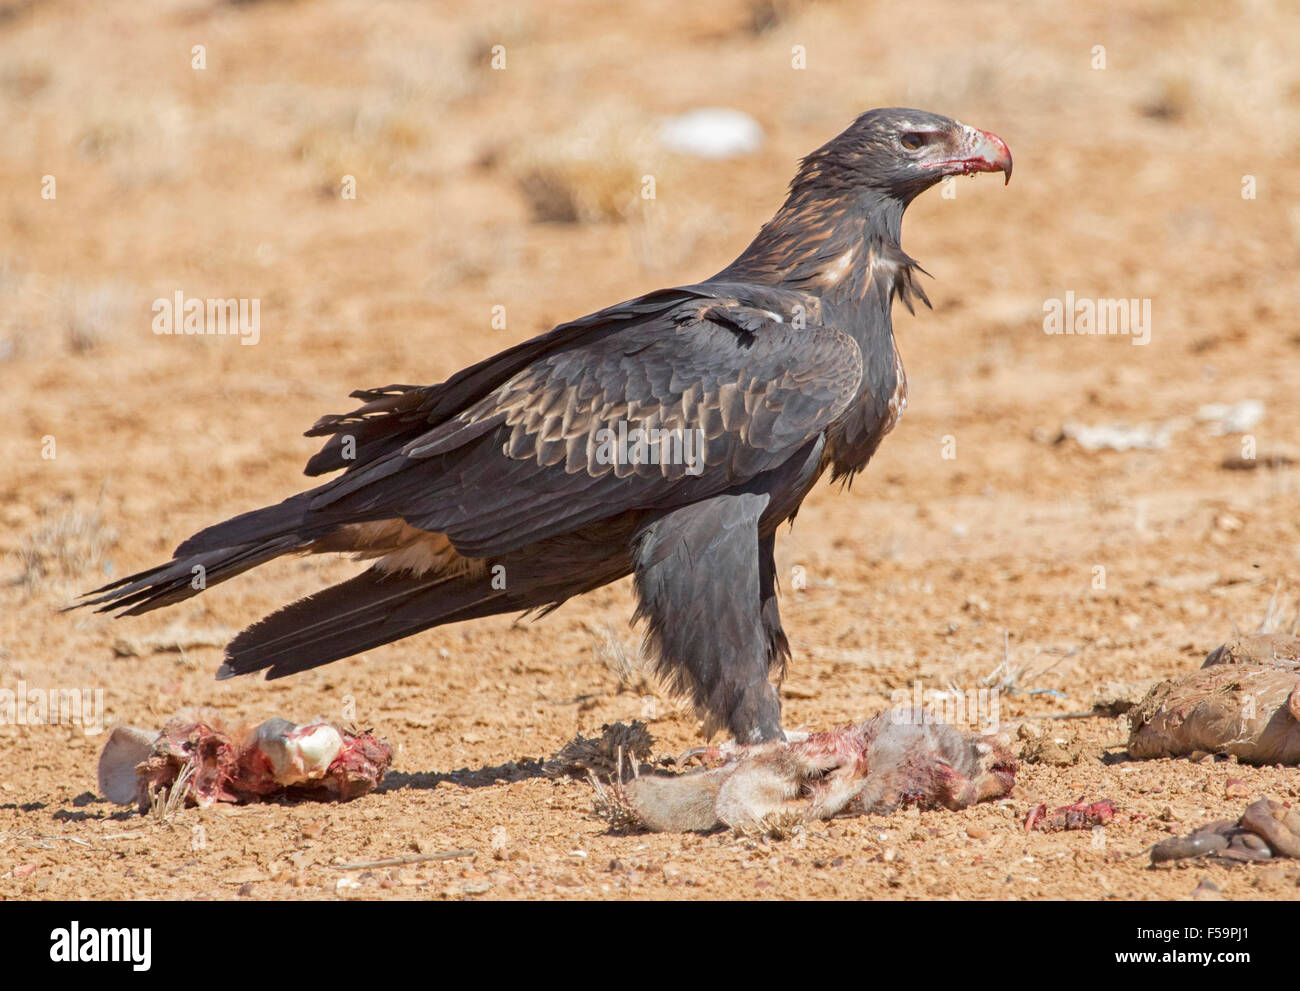 Majestic wedge-tailed eagle, Aquila audax, with blood on bill, feeding on remains of carcass of kangaroo in outback - Stock Image